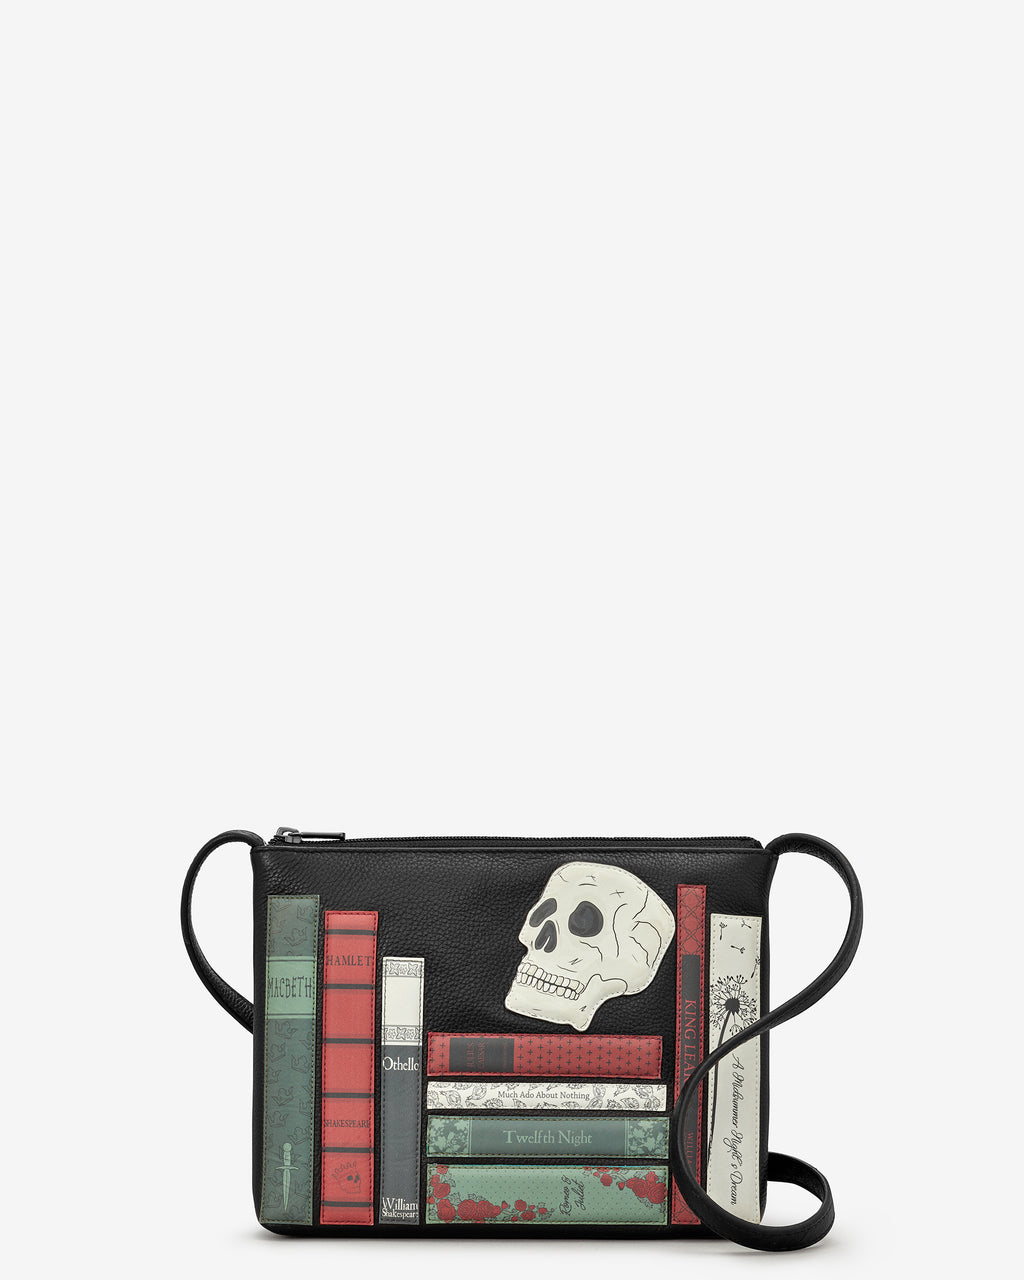 Shakespeare Bookworm Parker Leather Cross Body Bag